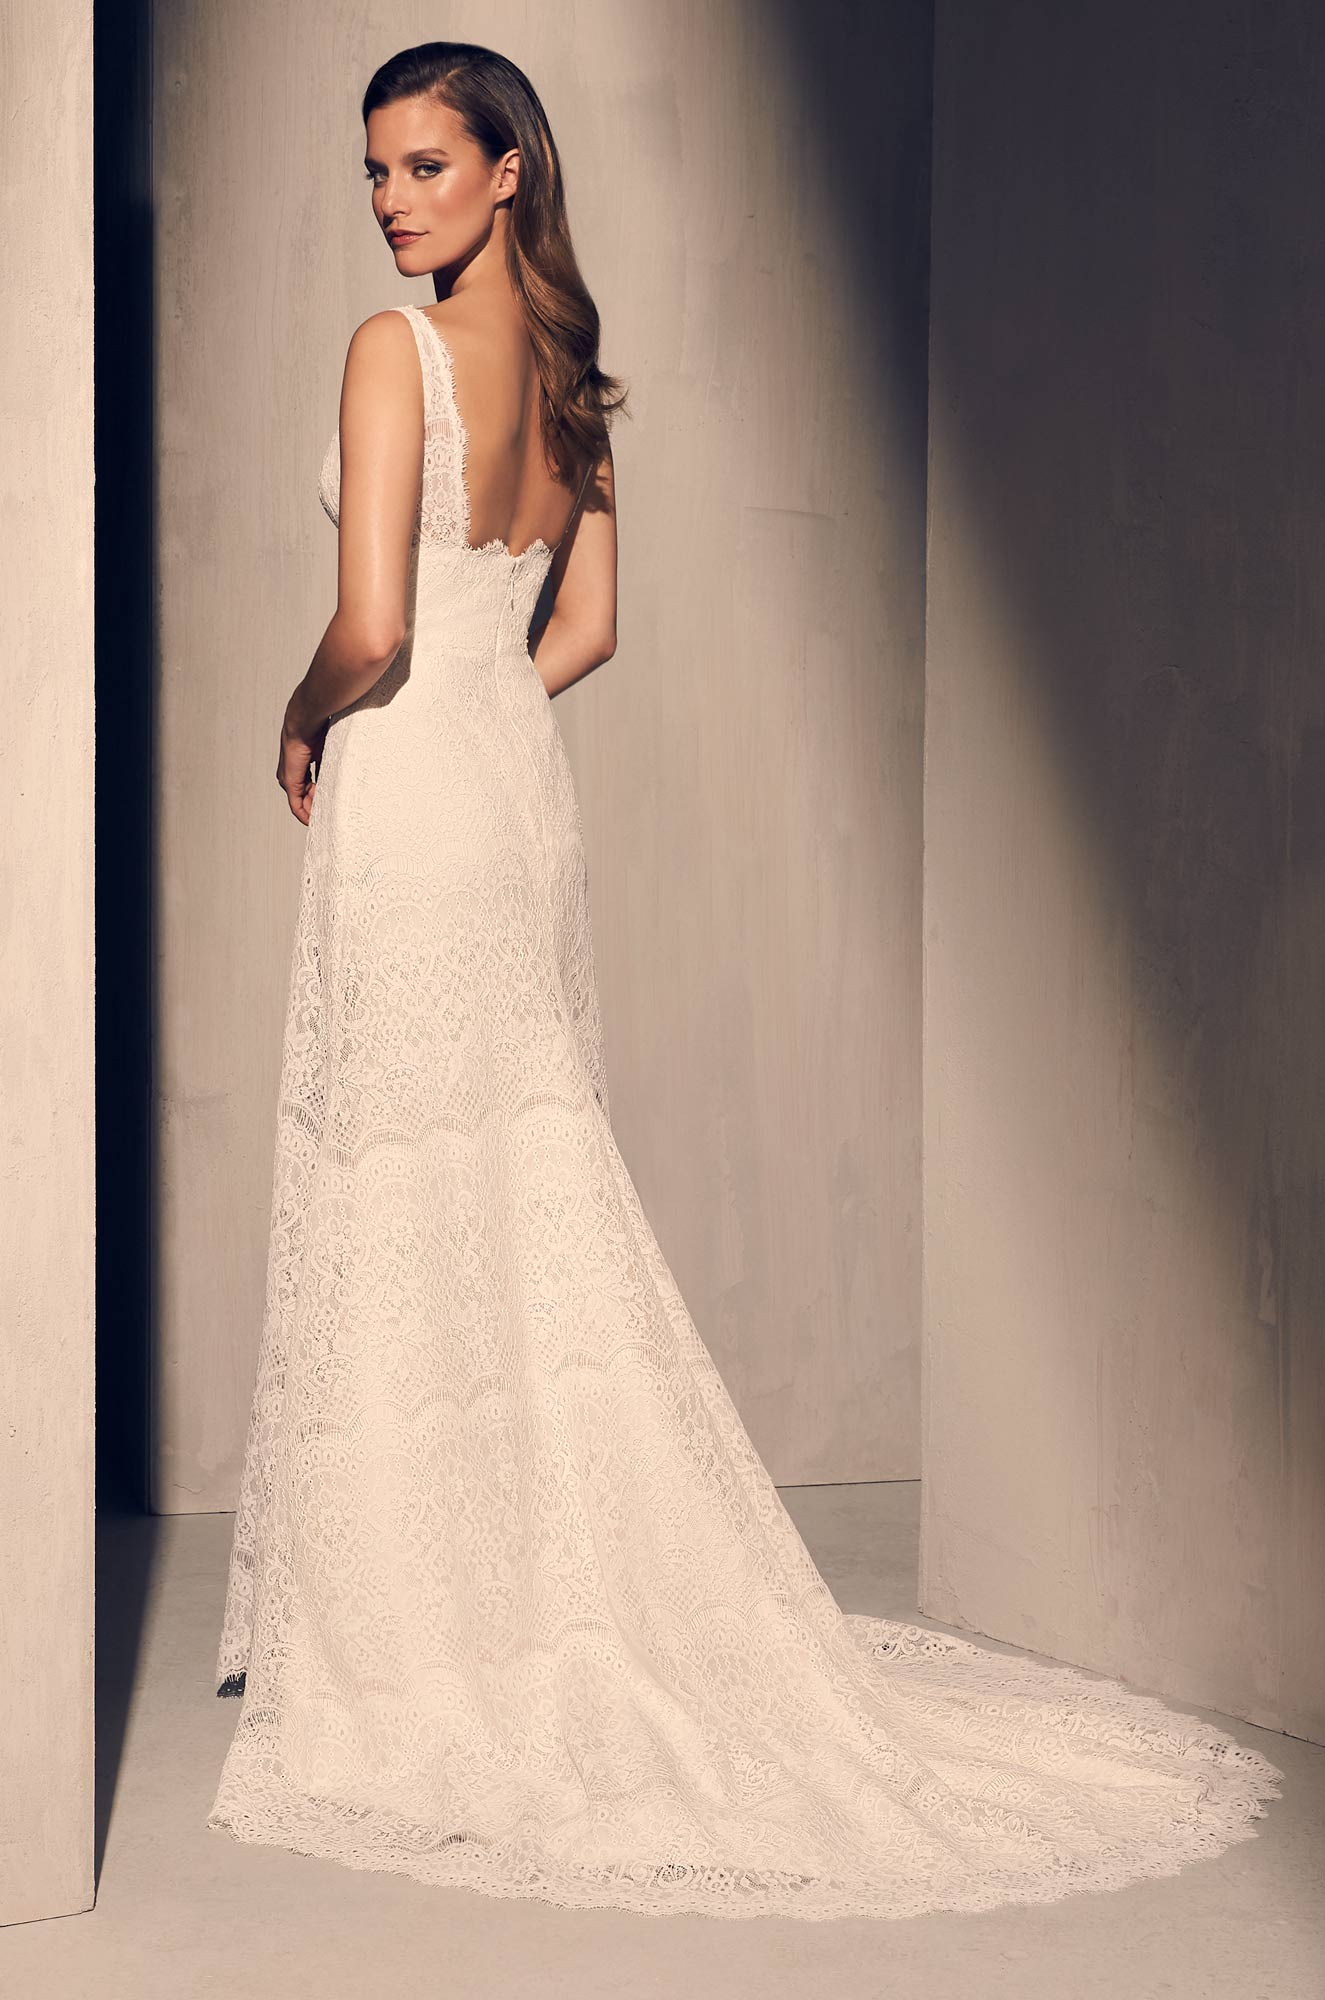 Timeless Lace Wedding Dress - Style #2217 | Mikaella Bridal